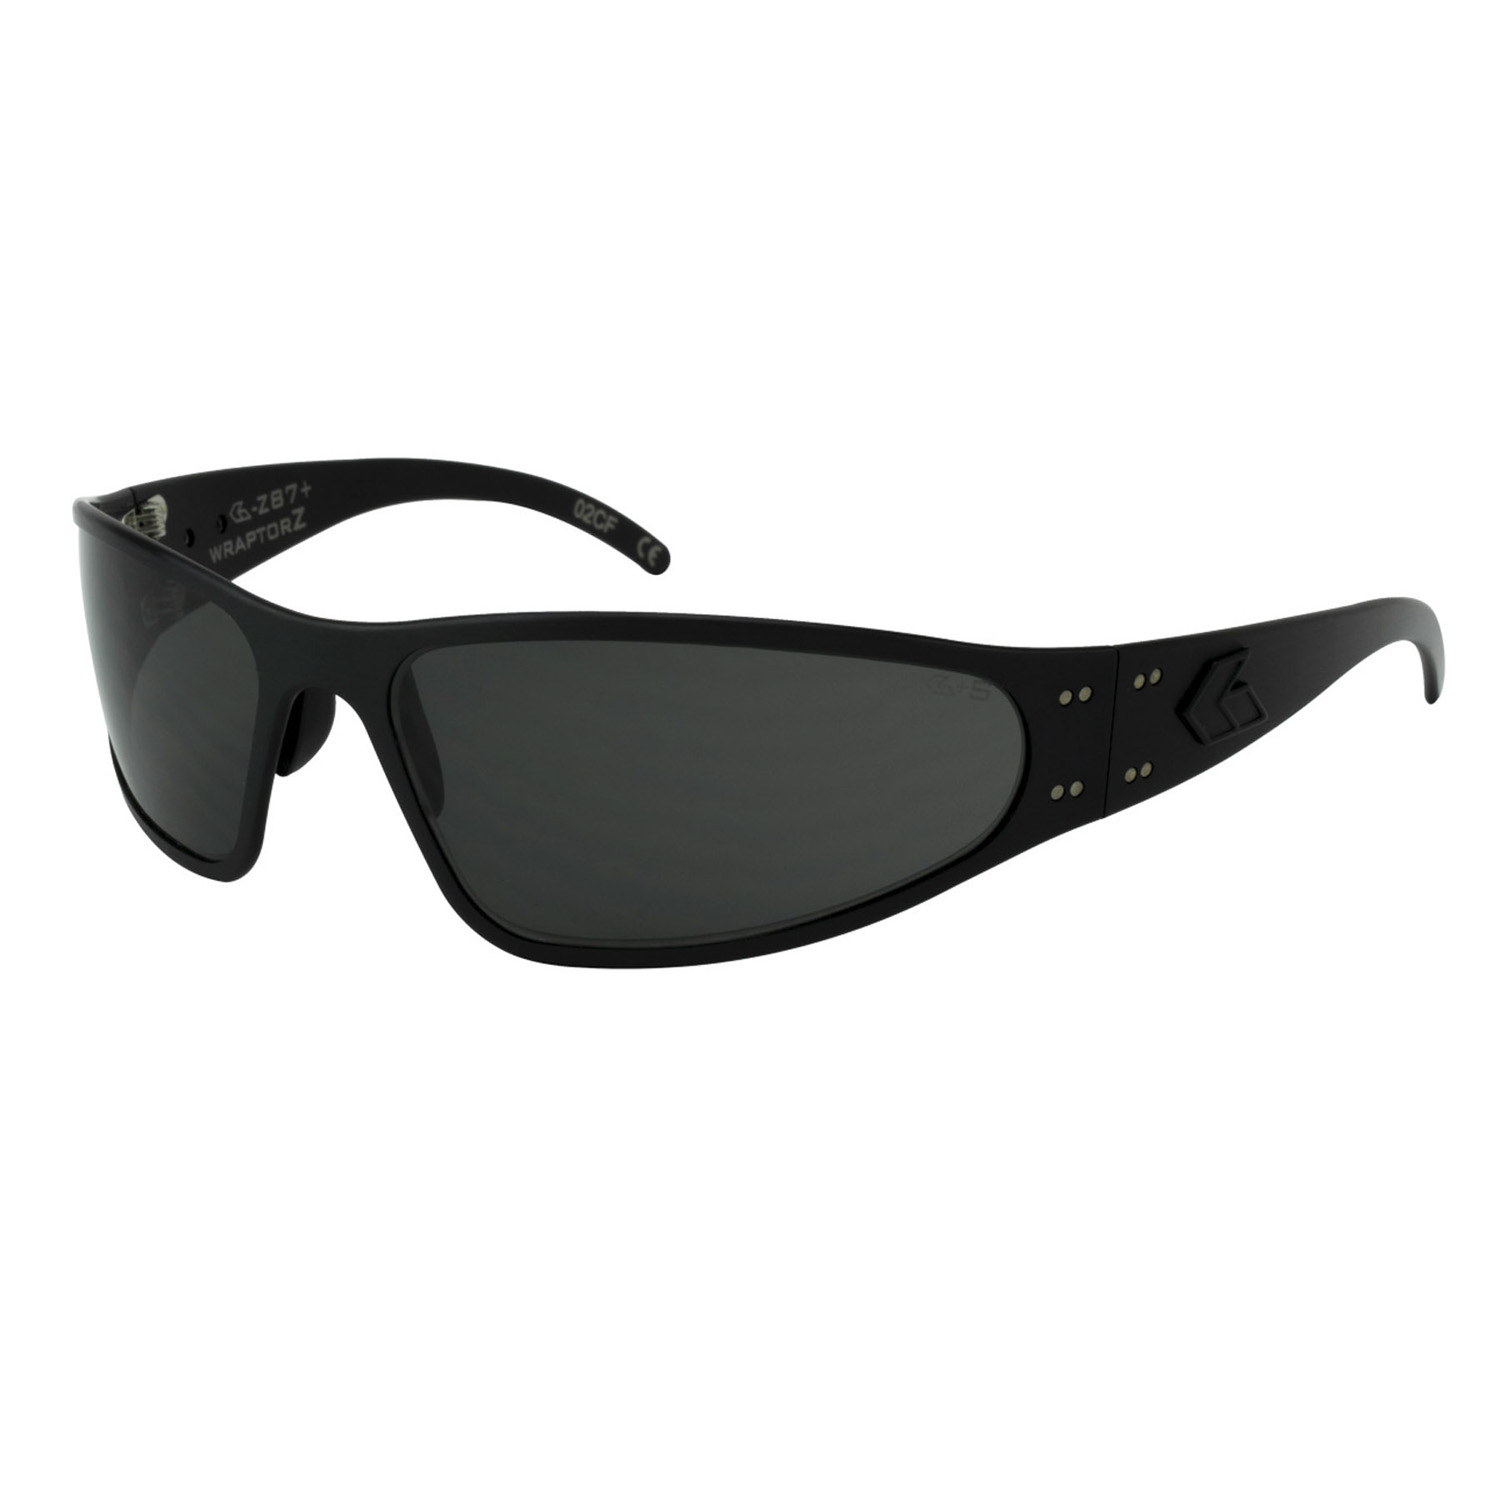 Gatorz Wraptor Z Sunglasses